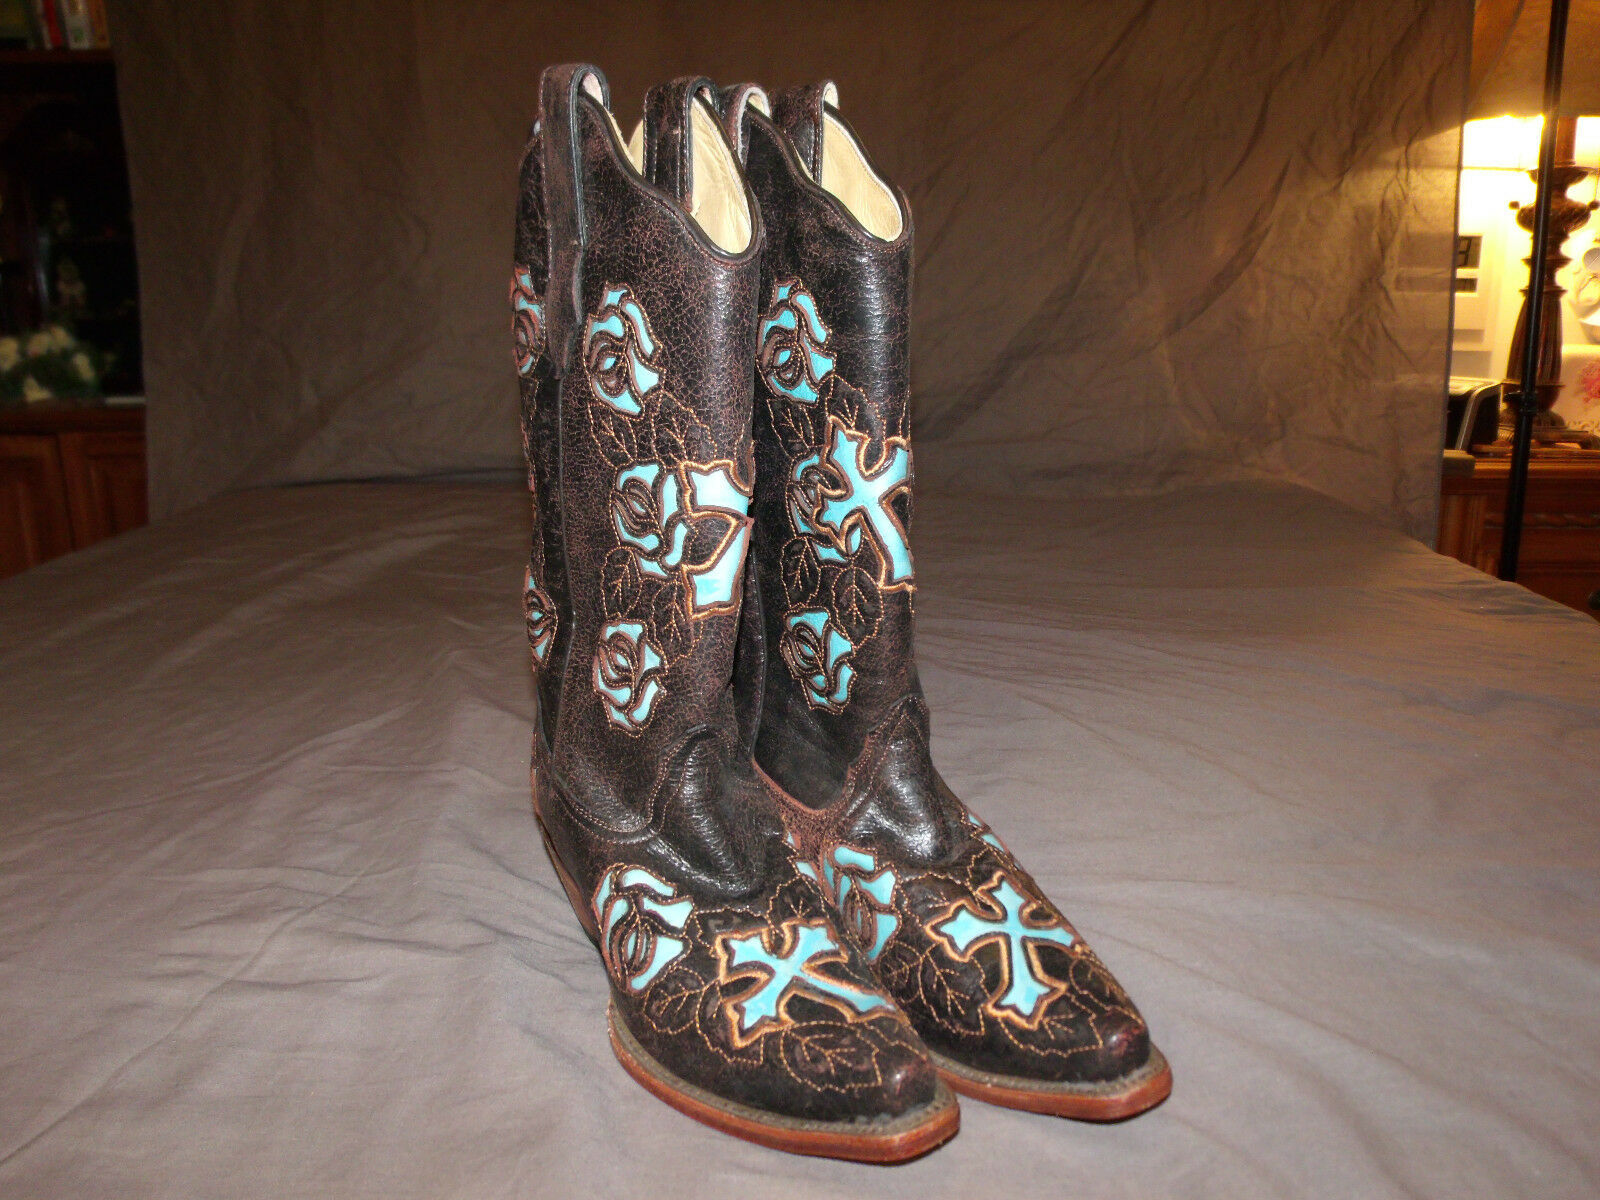 Corral R2482 Cowgirl Boots Boots Boots size 8.5 Brown Turquoise Cross Leather Western Rodeo ff256f